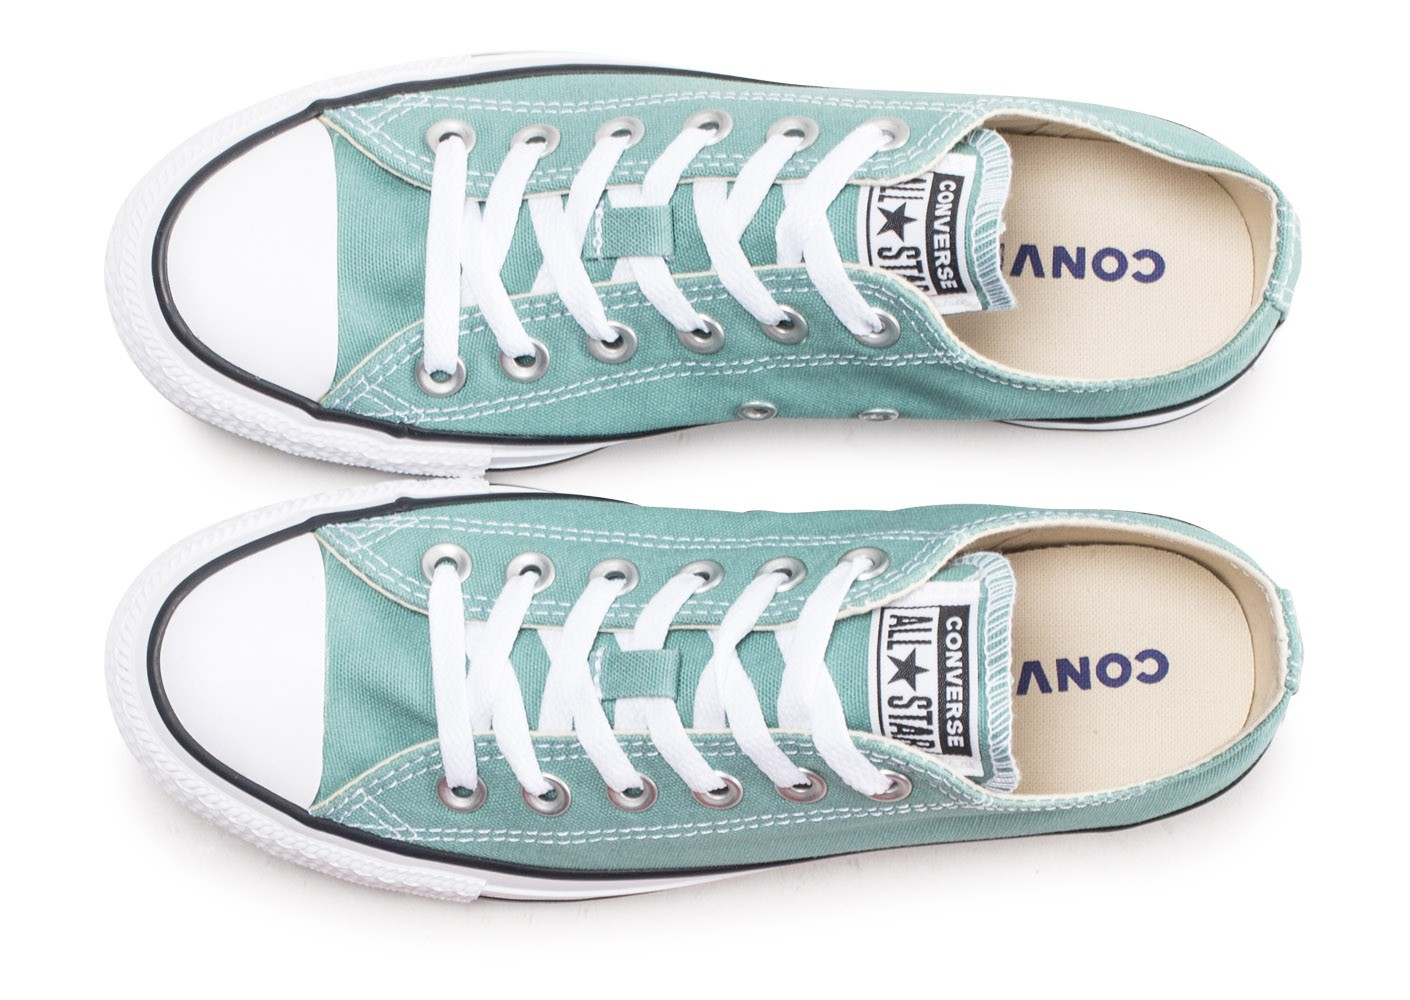 Converse Chuck Taylor All Star Low vert d'eau femme ...